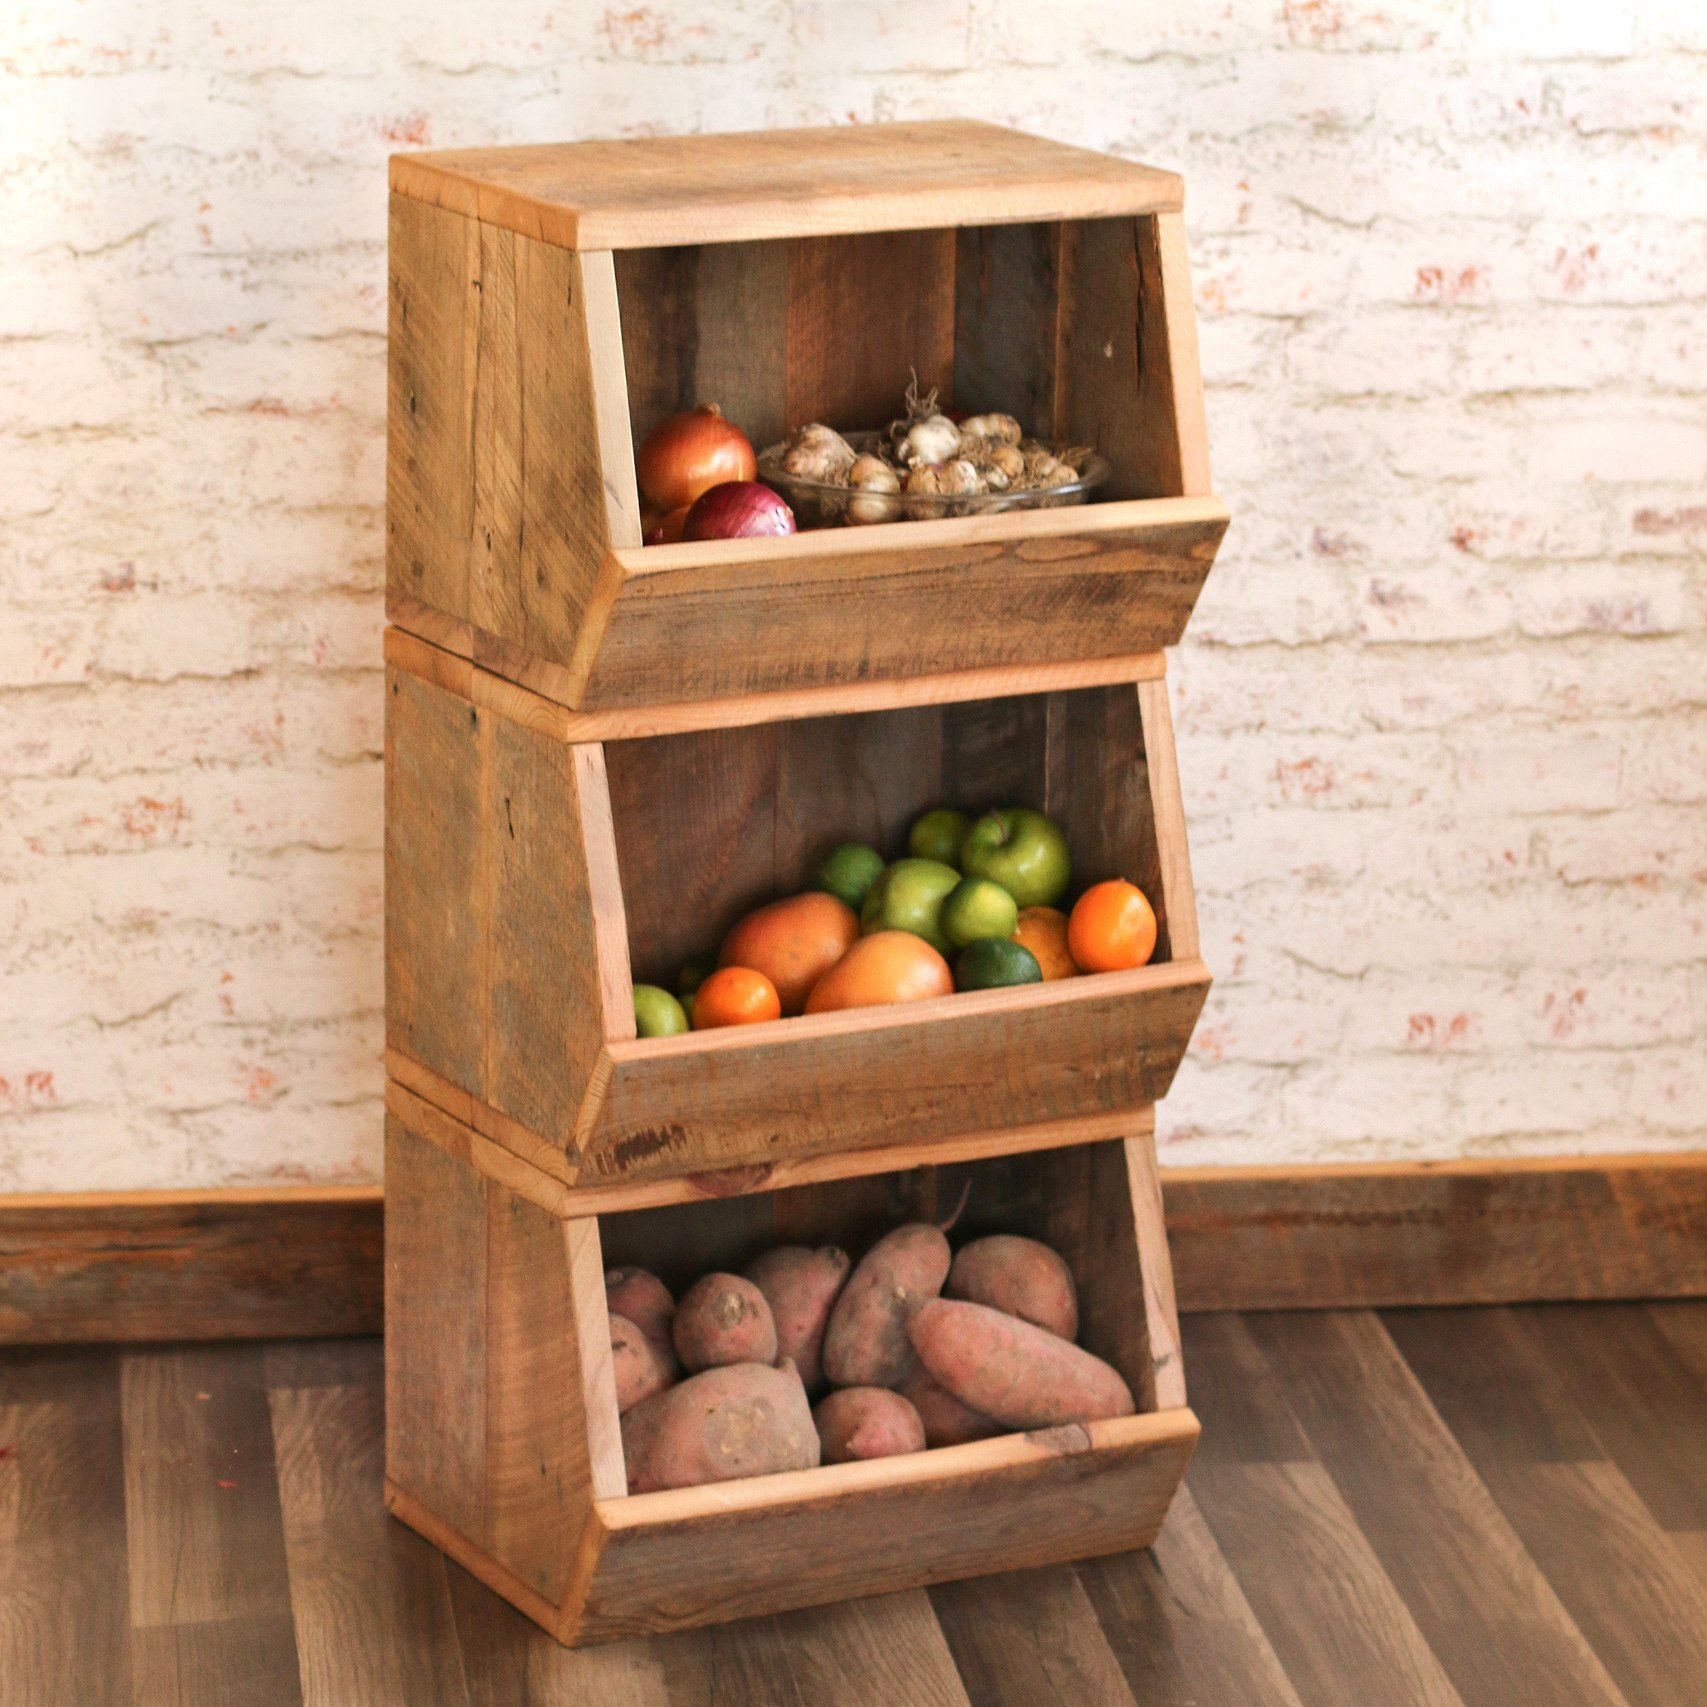 These Storage Bins Look Great For Organizing The Kitchen Kids Toys And Clutter In The Mudroom Vegetable Bin Produce Storage Vegetable Storage